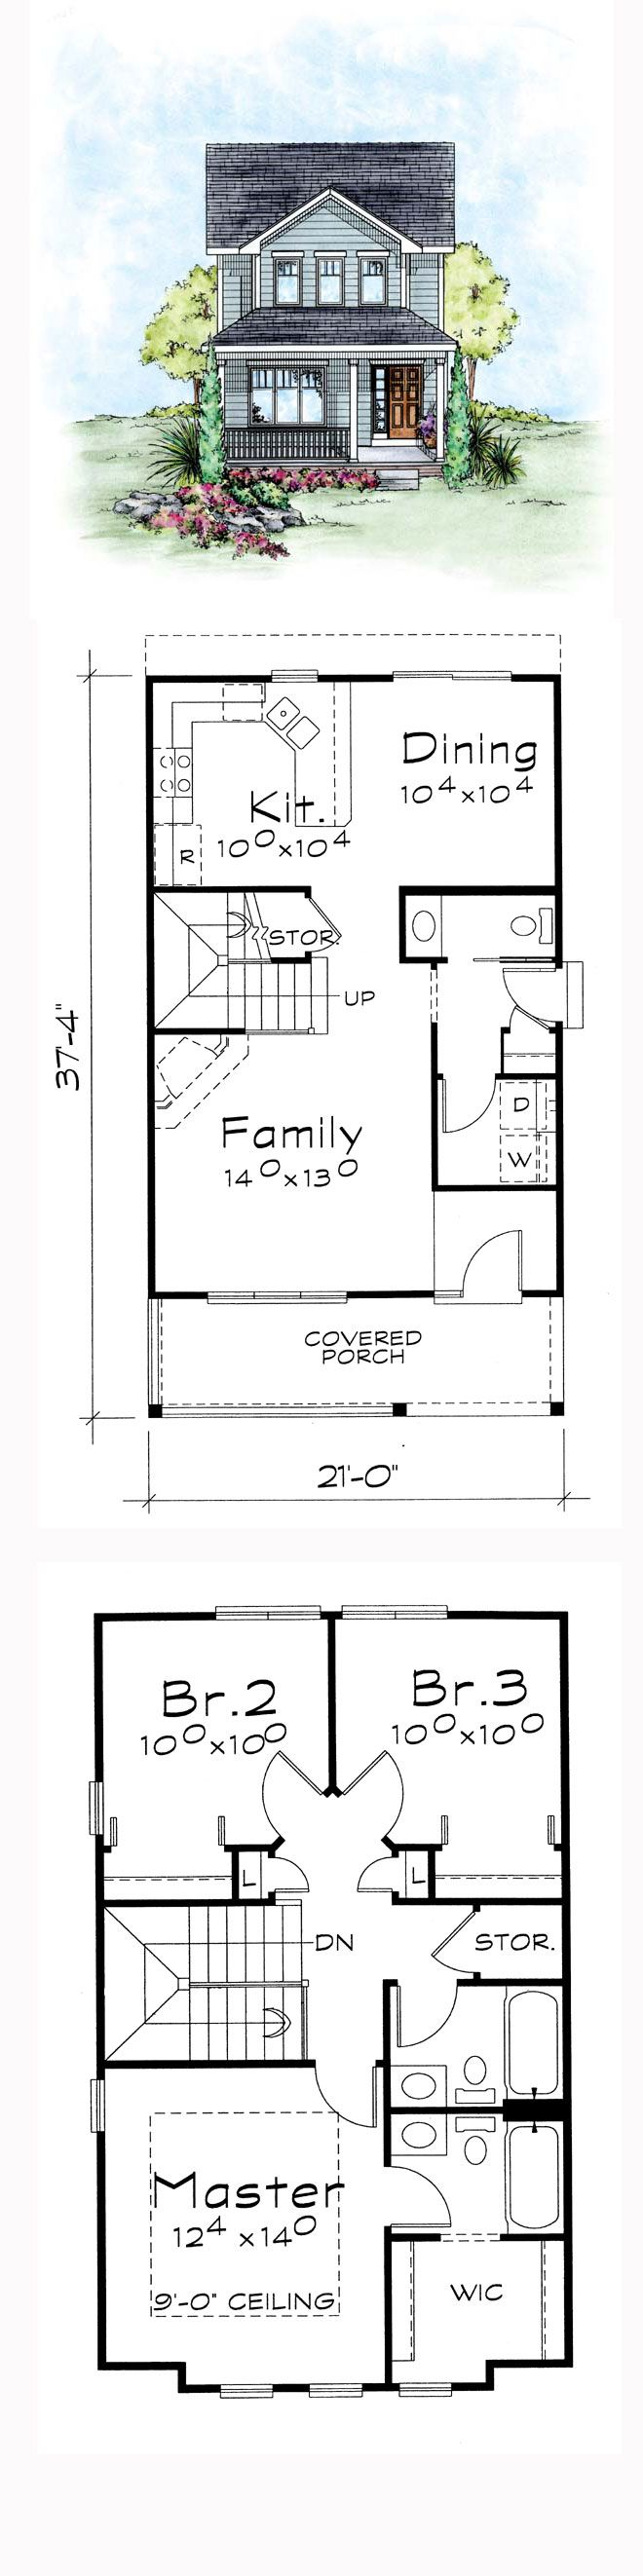 Small 3 Bedroom Cabin Plans 17 Best Ideas About 3 Bedroom House On Pinterest The Blueprint 3